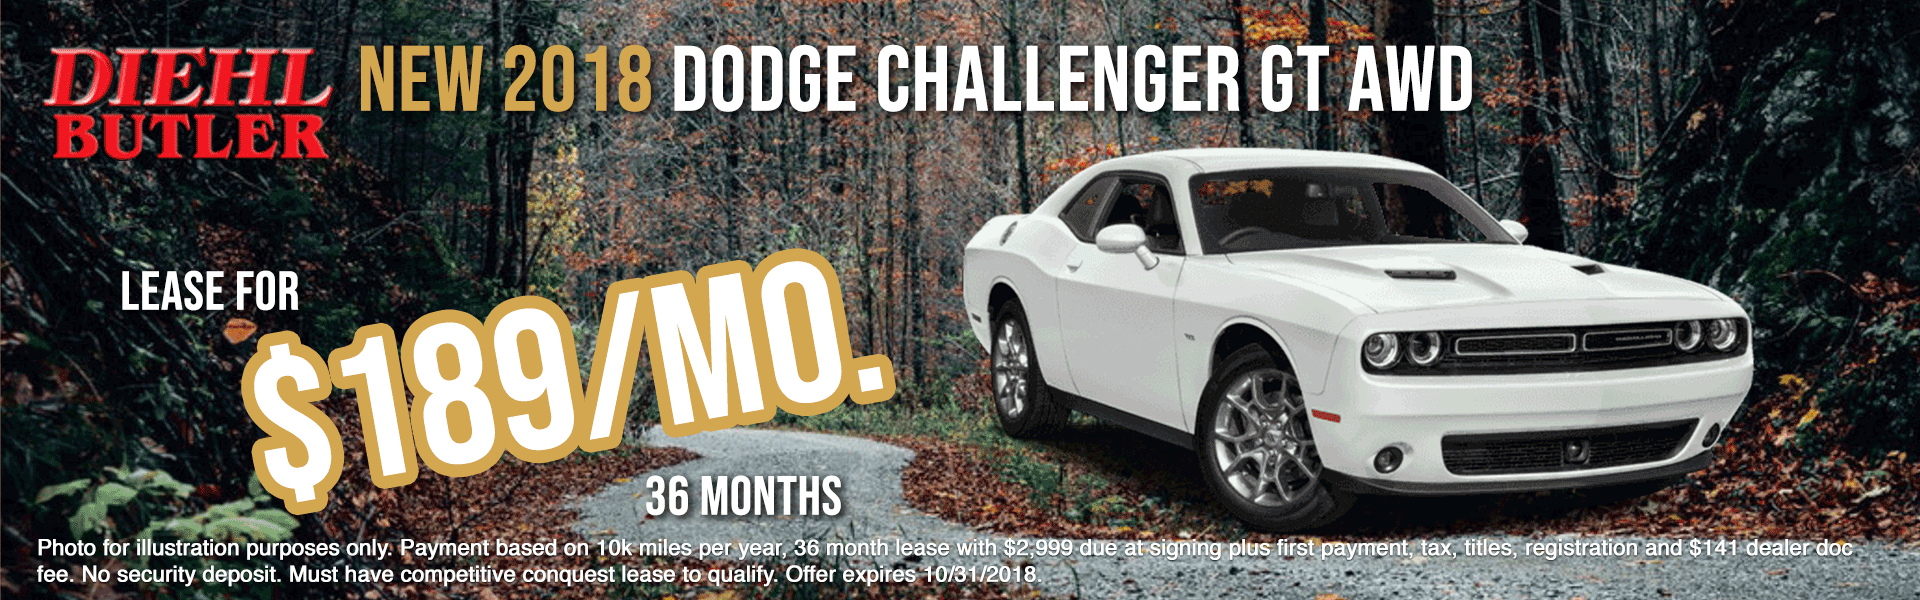 diehl of butler new vehicle specials jeep specials ram specials dodge specials Chrysler specials new specials cdjr specials diehl auto diehl specials butler pa 16001 _D180705-2018-CHALLENGER-GT-AWD---OCT-BIG